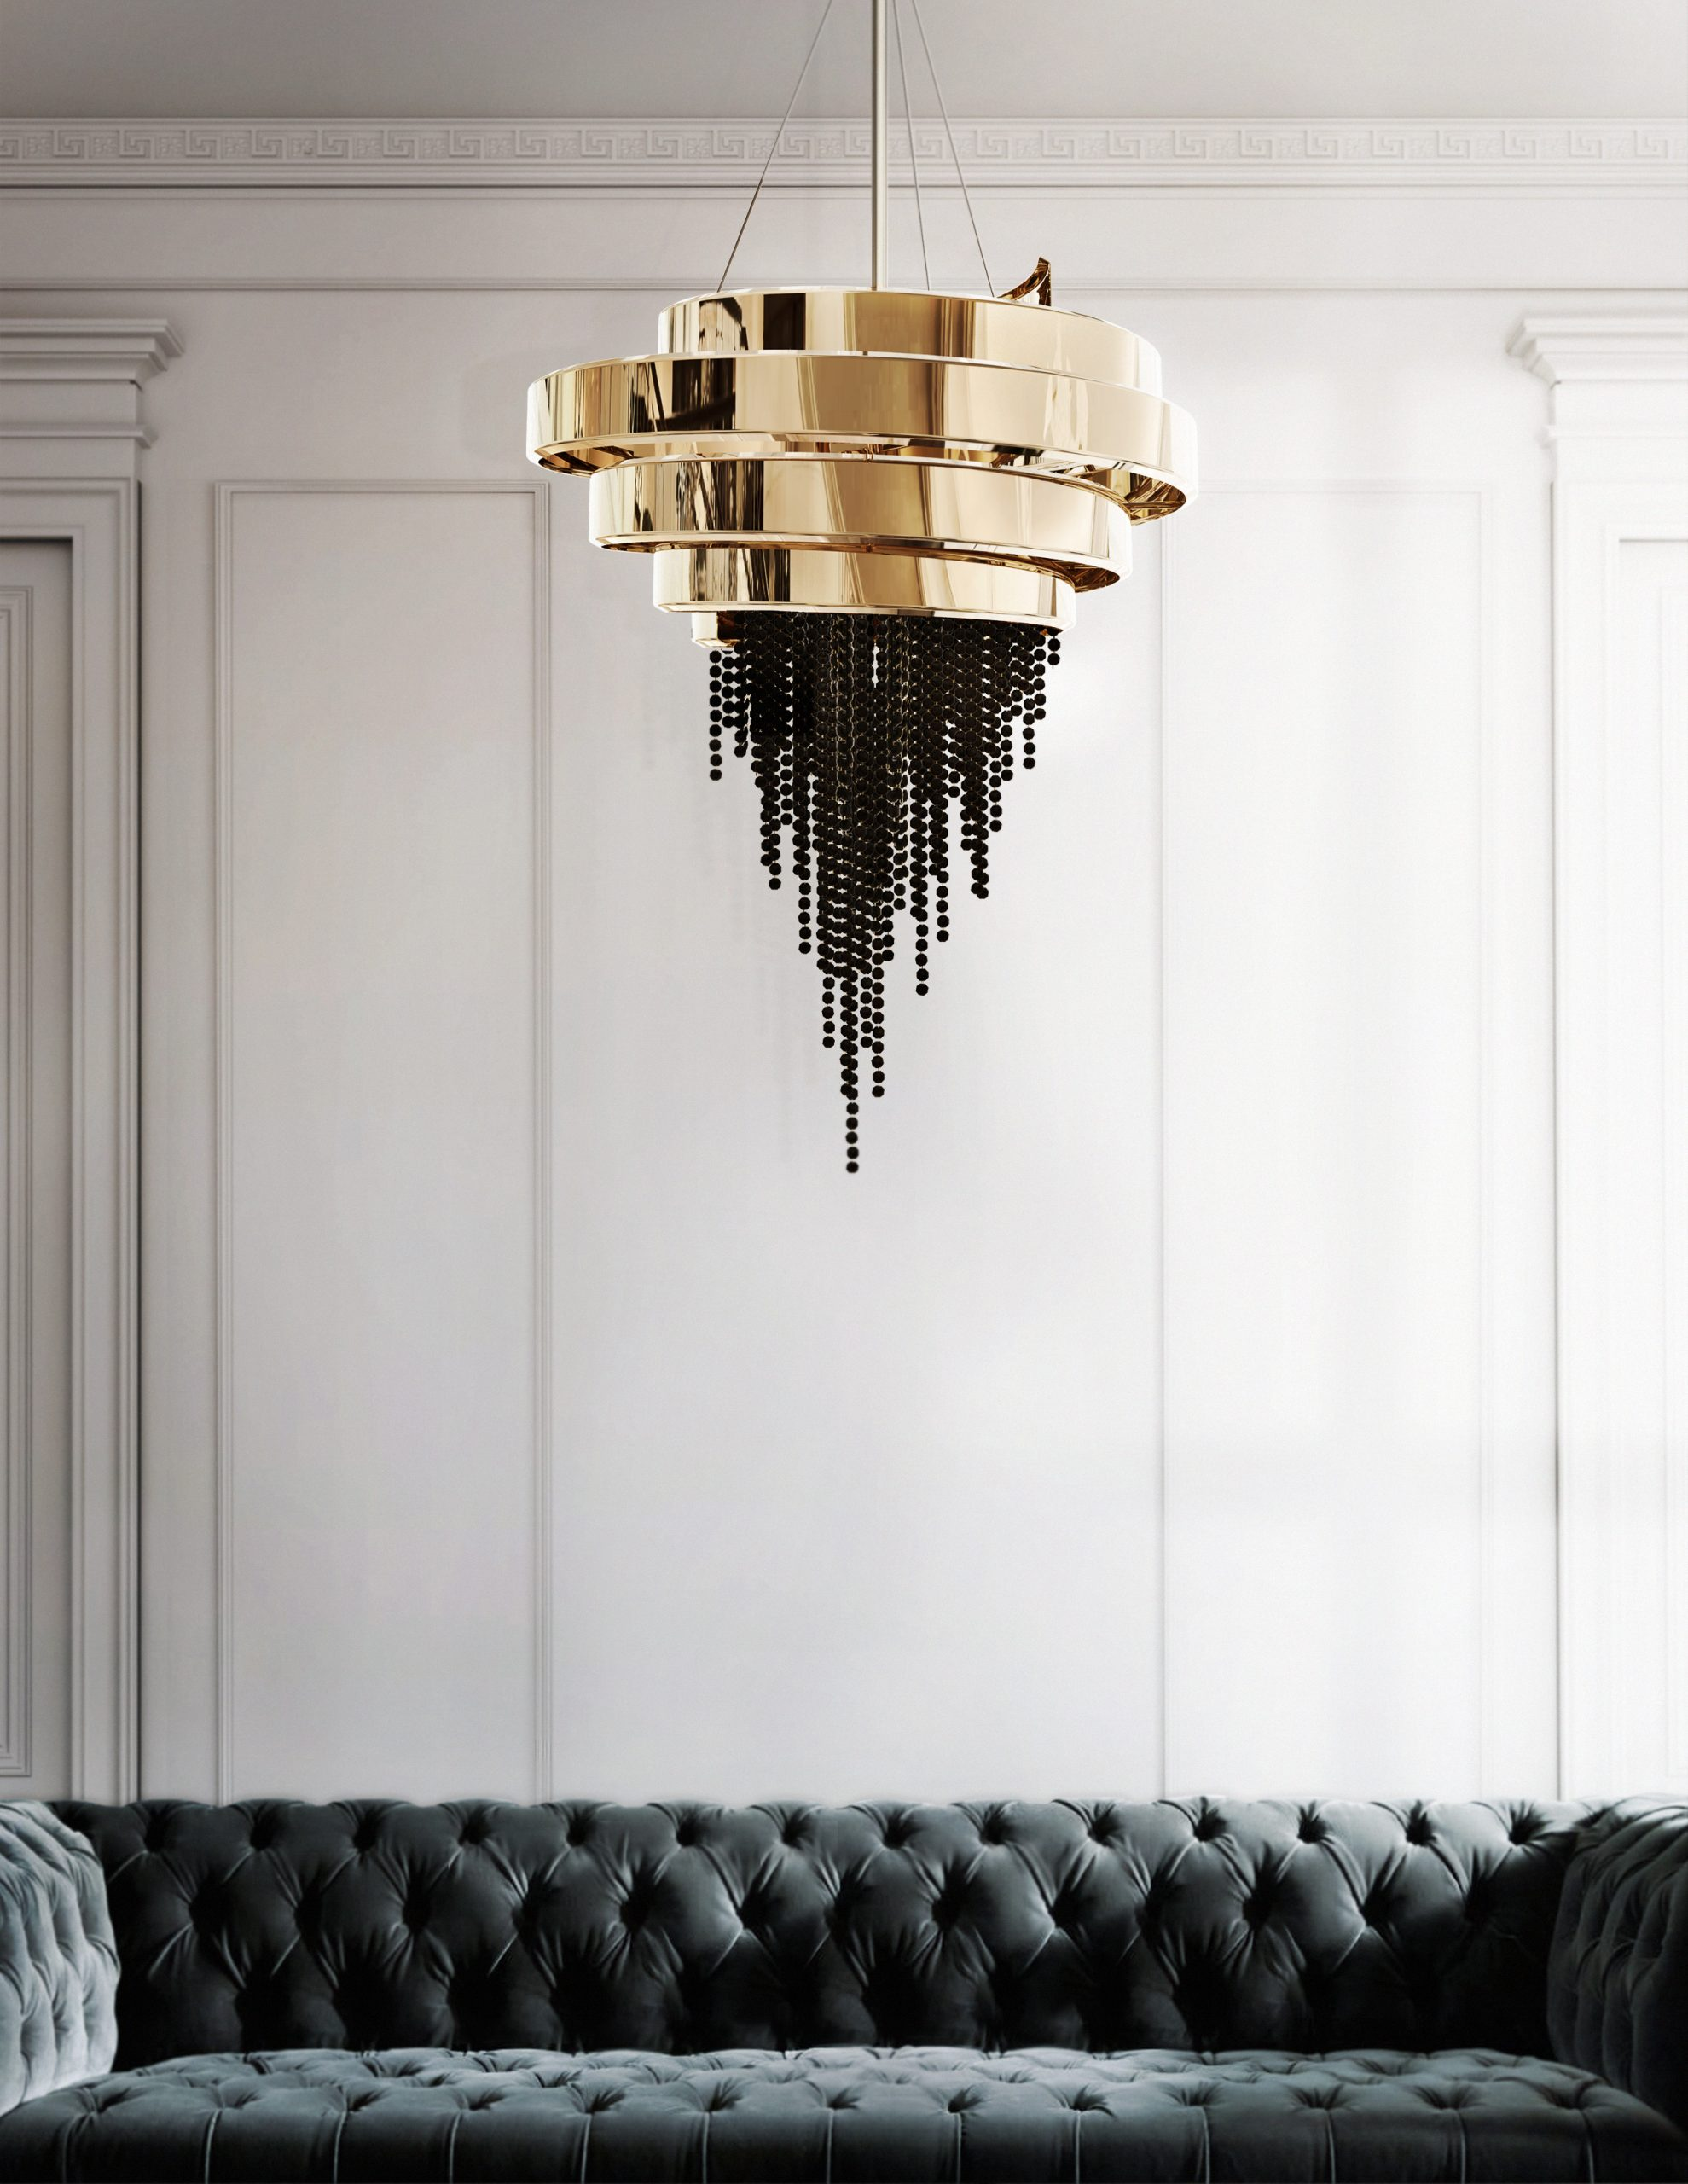 Product of the week: the guggenheim chandelier